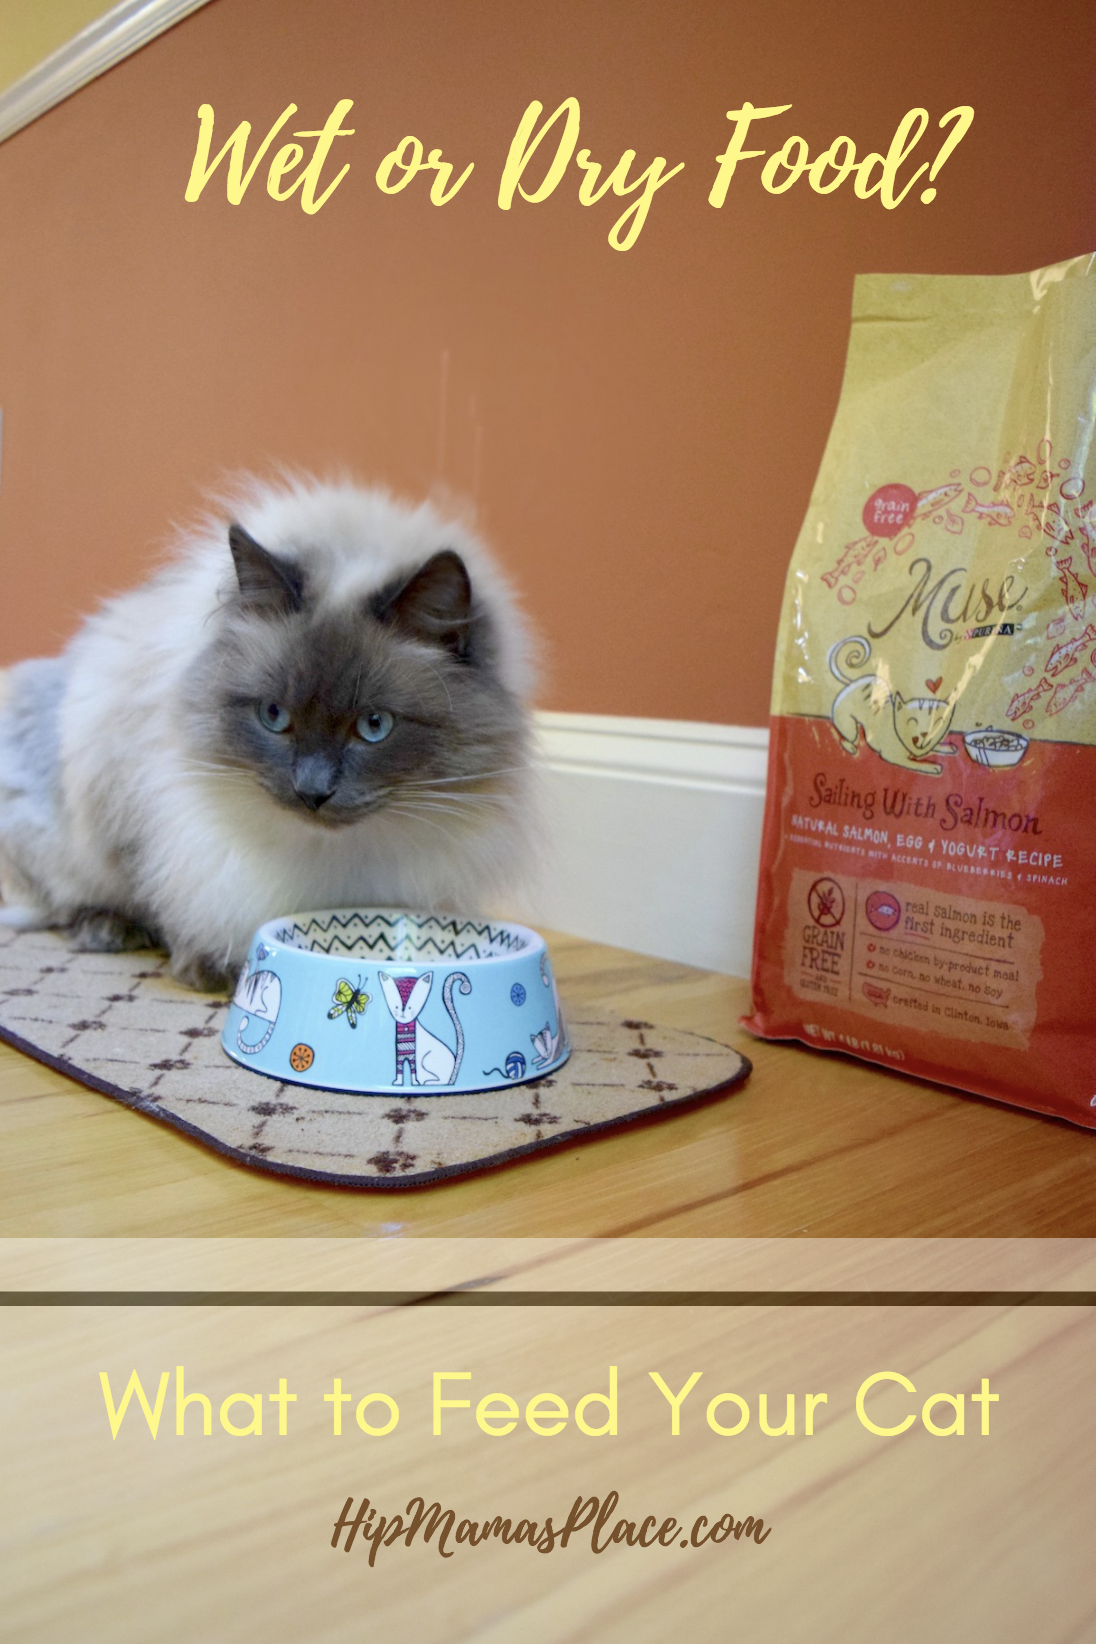 Oscar Approved Purina Muse Cat Food at Petco + Printable